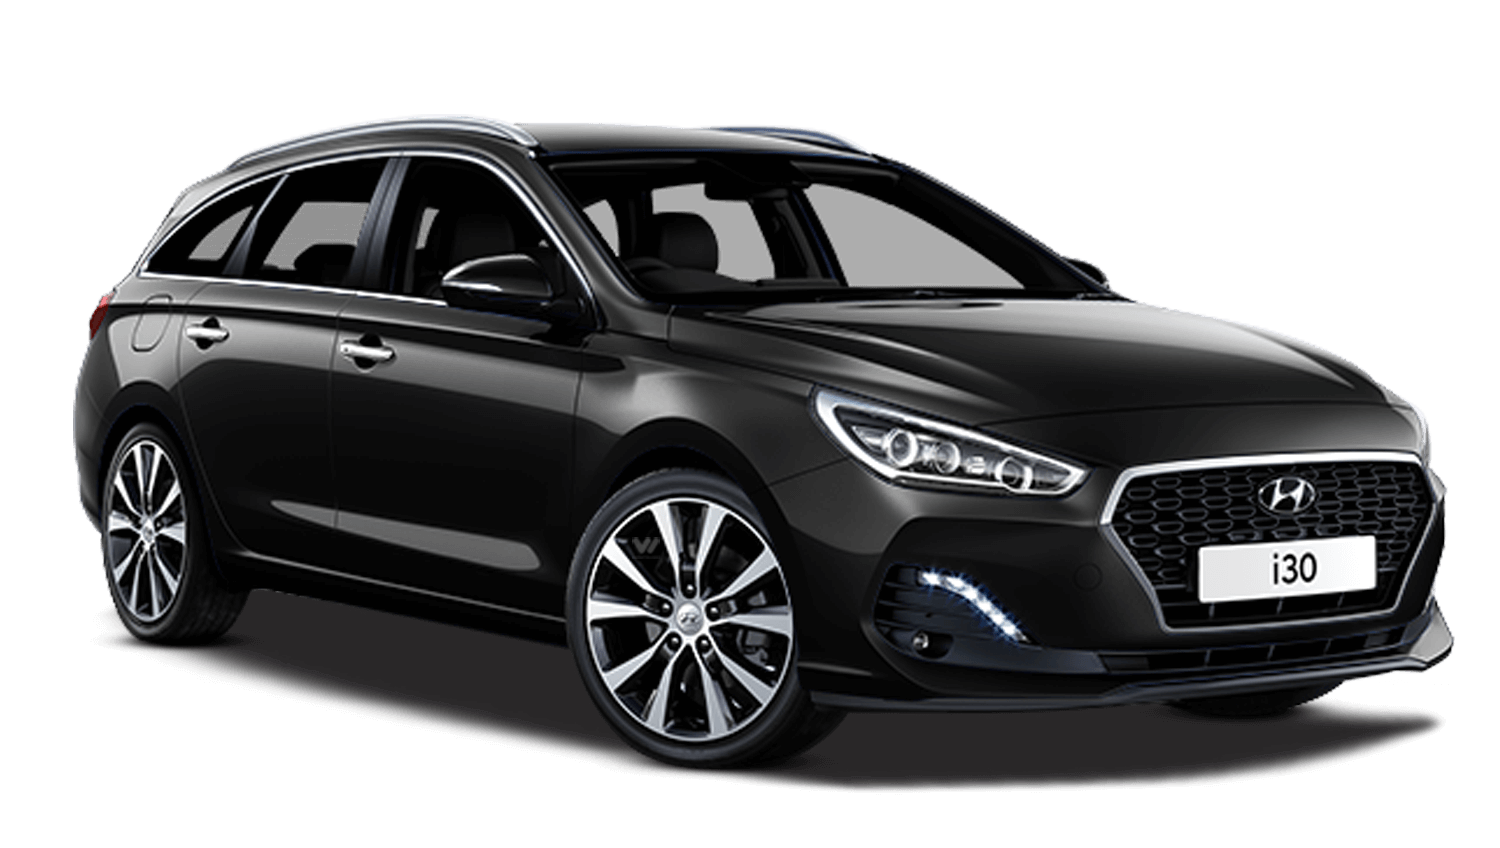 Phantom Black Hyundai I30 Tourer